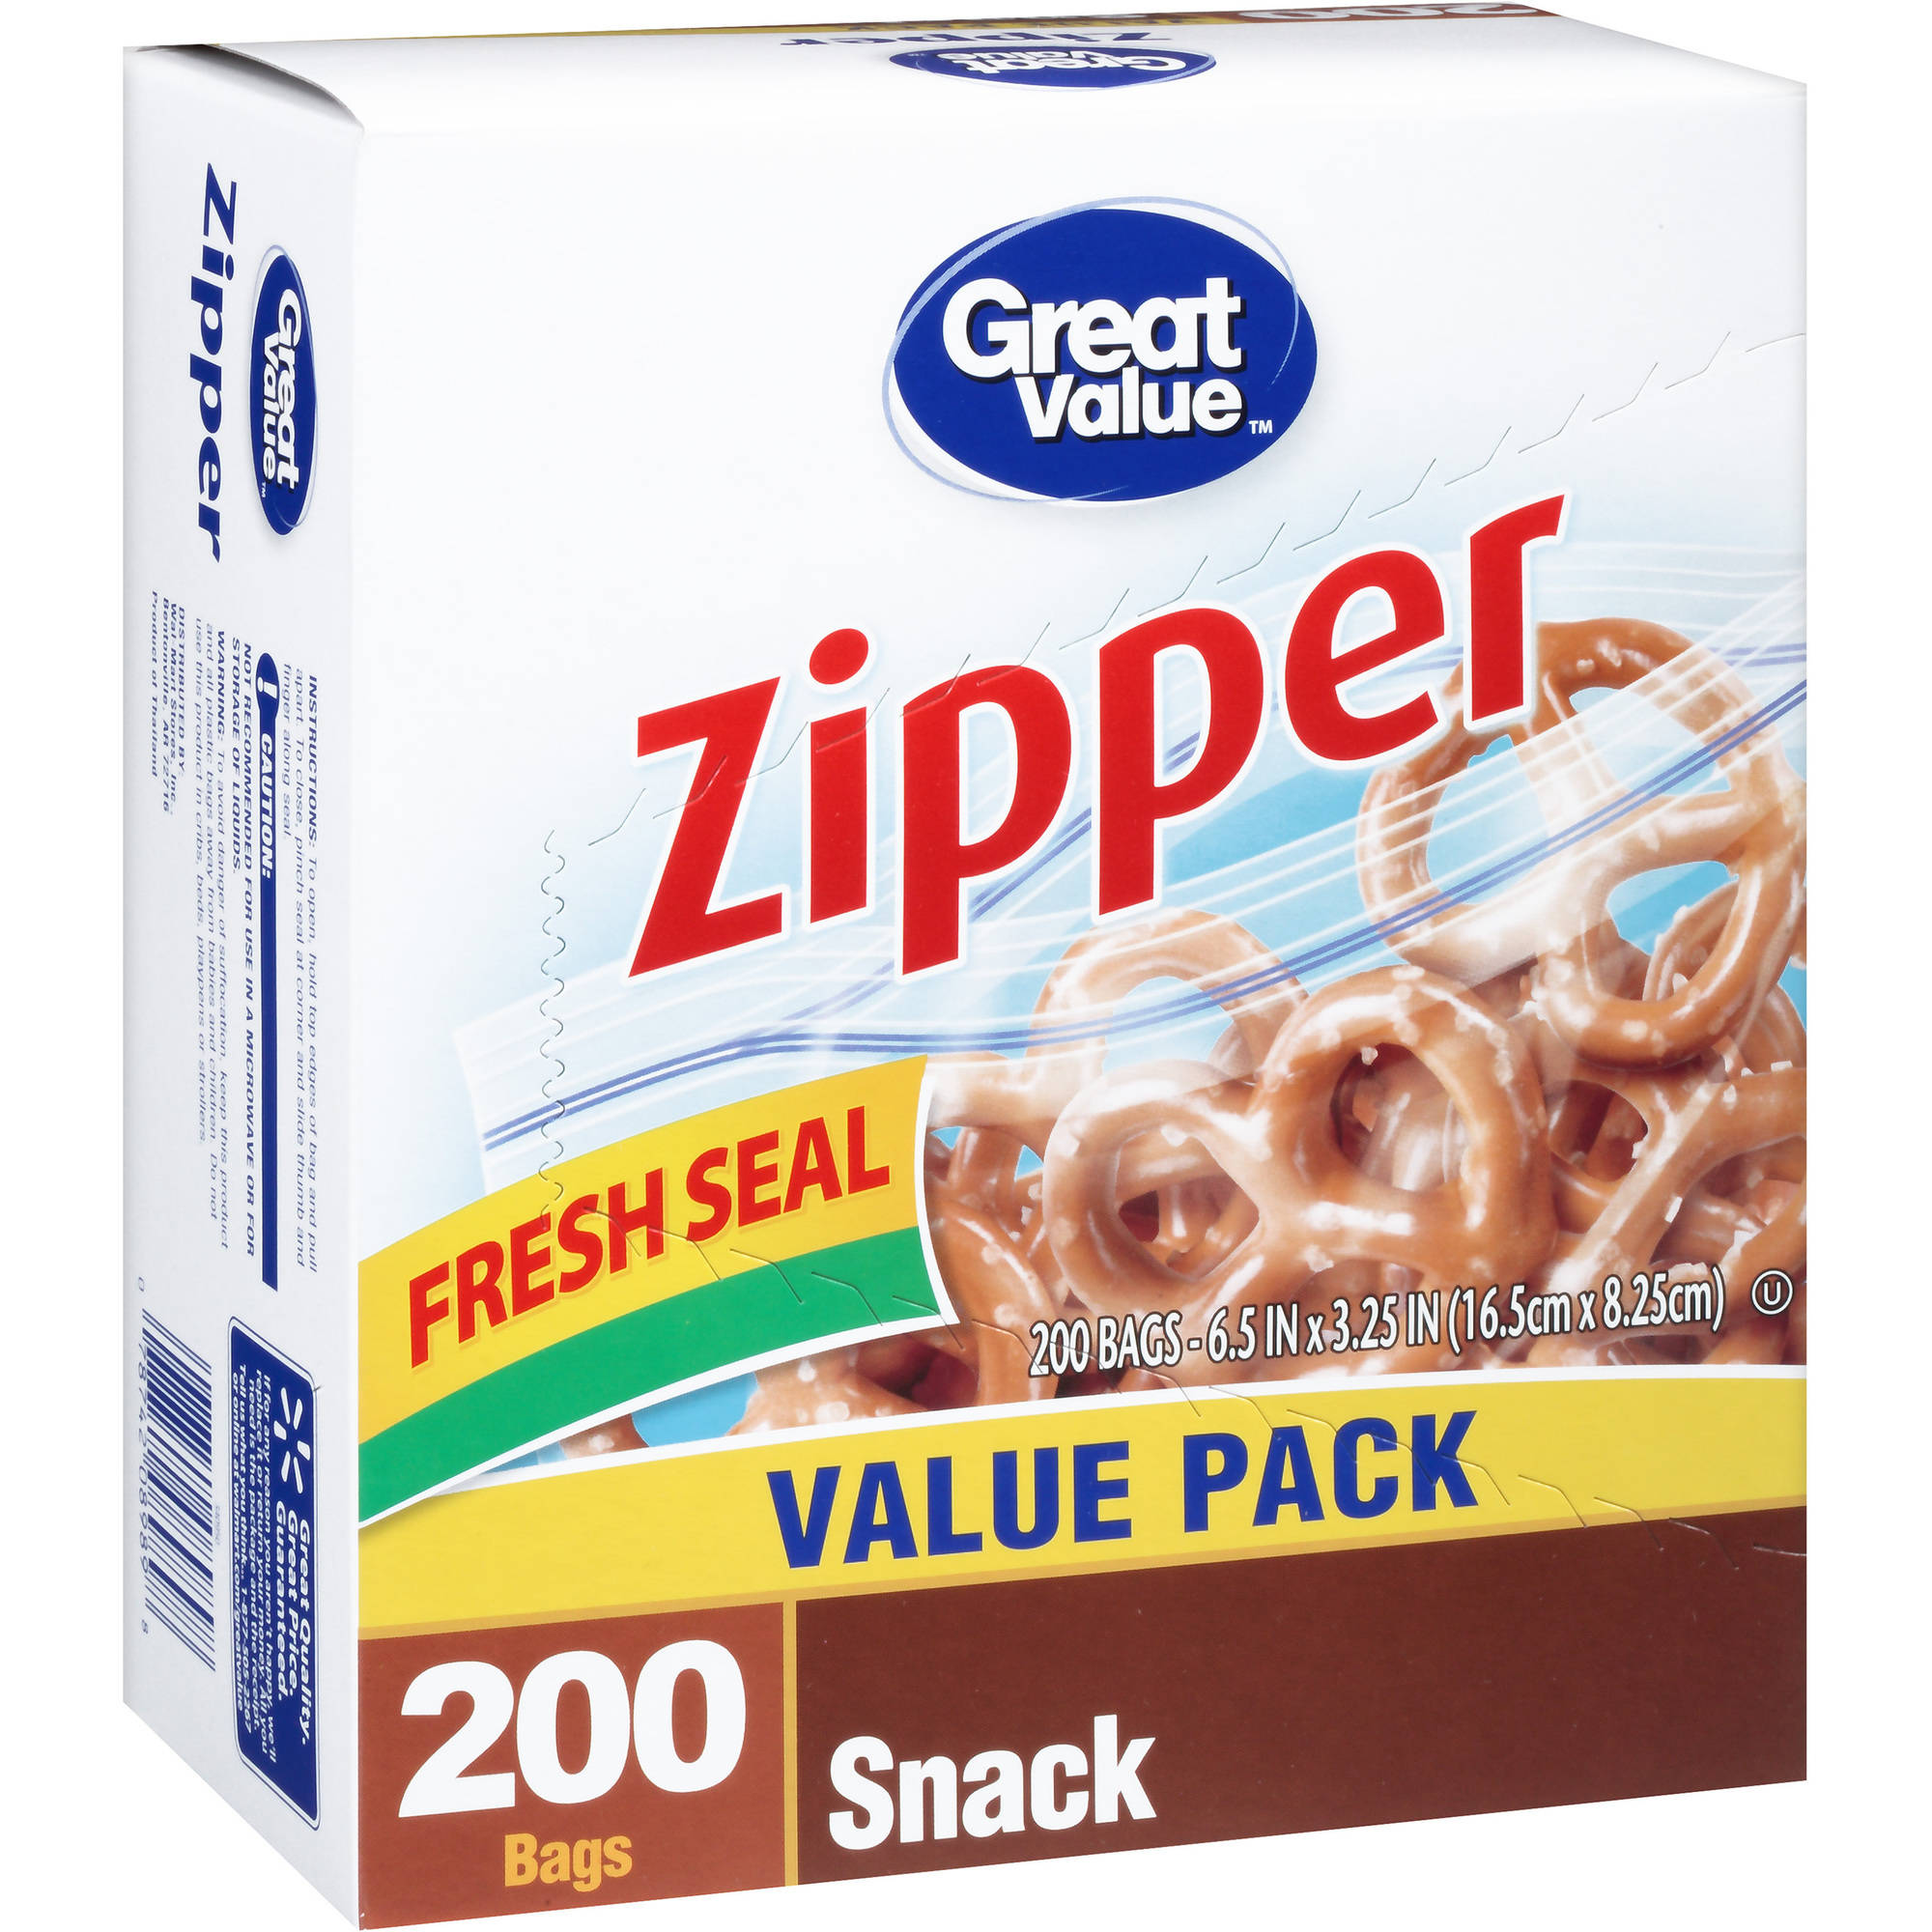 Great Value Zipper Snack Bags, 200 count